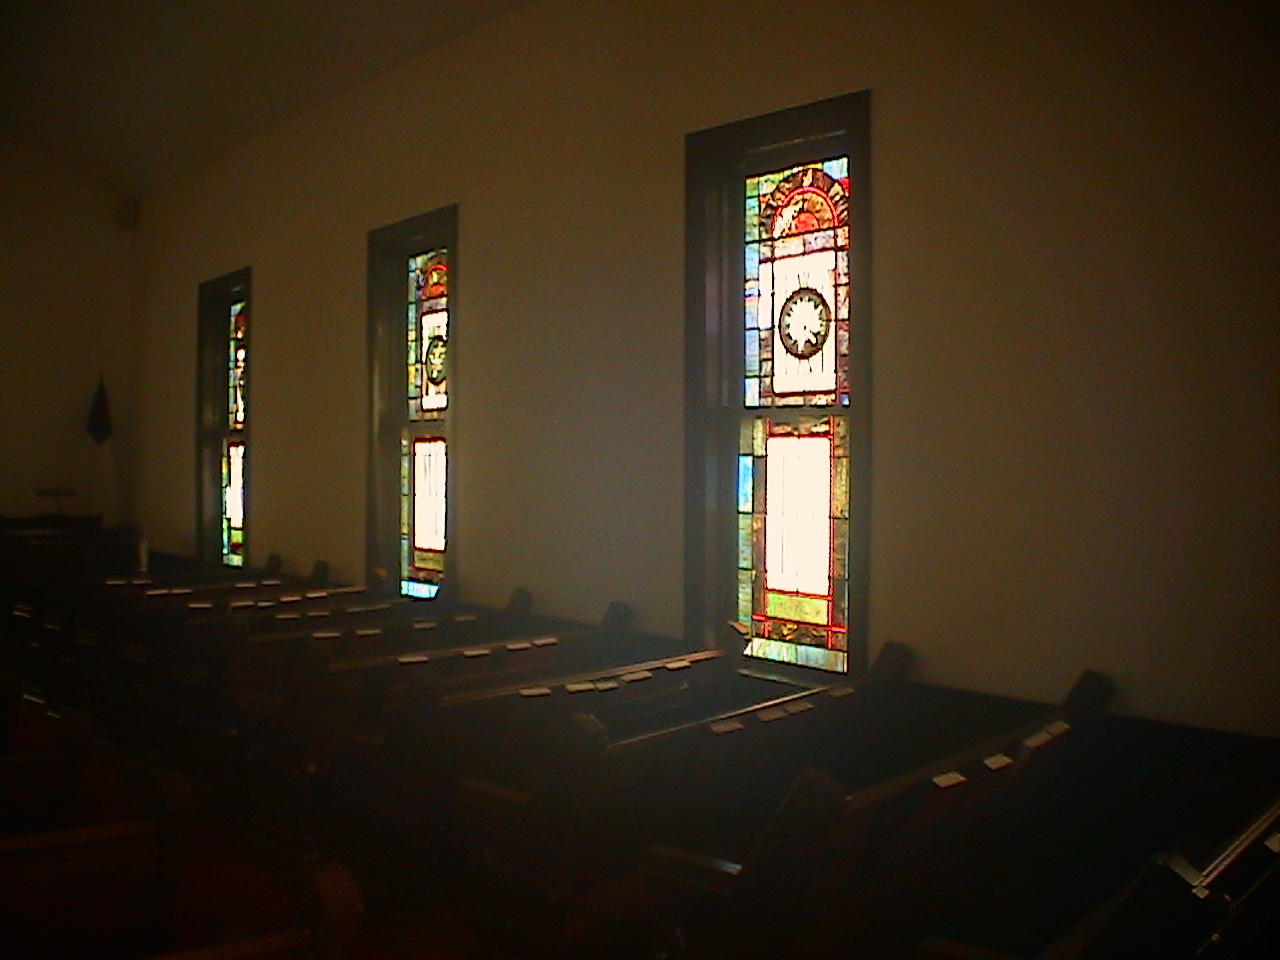 Some of the stained glass windows original to Wesley Memorial Church in Atlanta and installed in First Presbyterian Villa Rica ca. 1964-1965. Photo by Ernest E. Blevins, MFA, 14 July 2005.